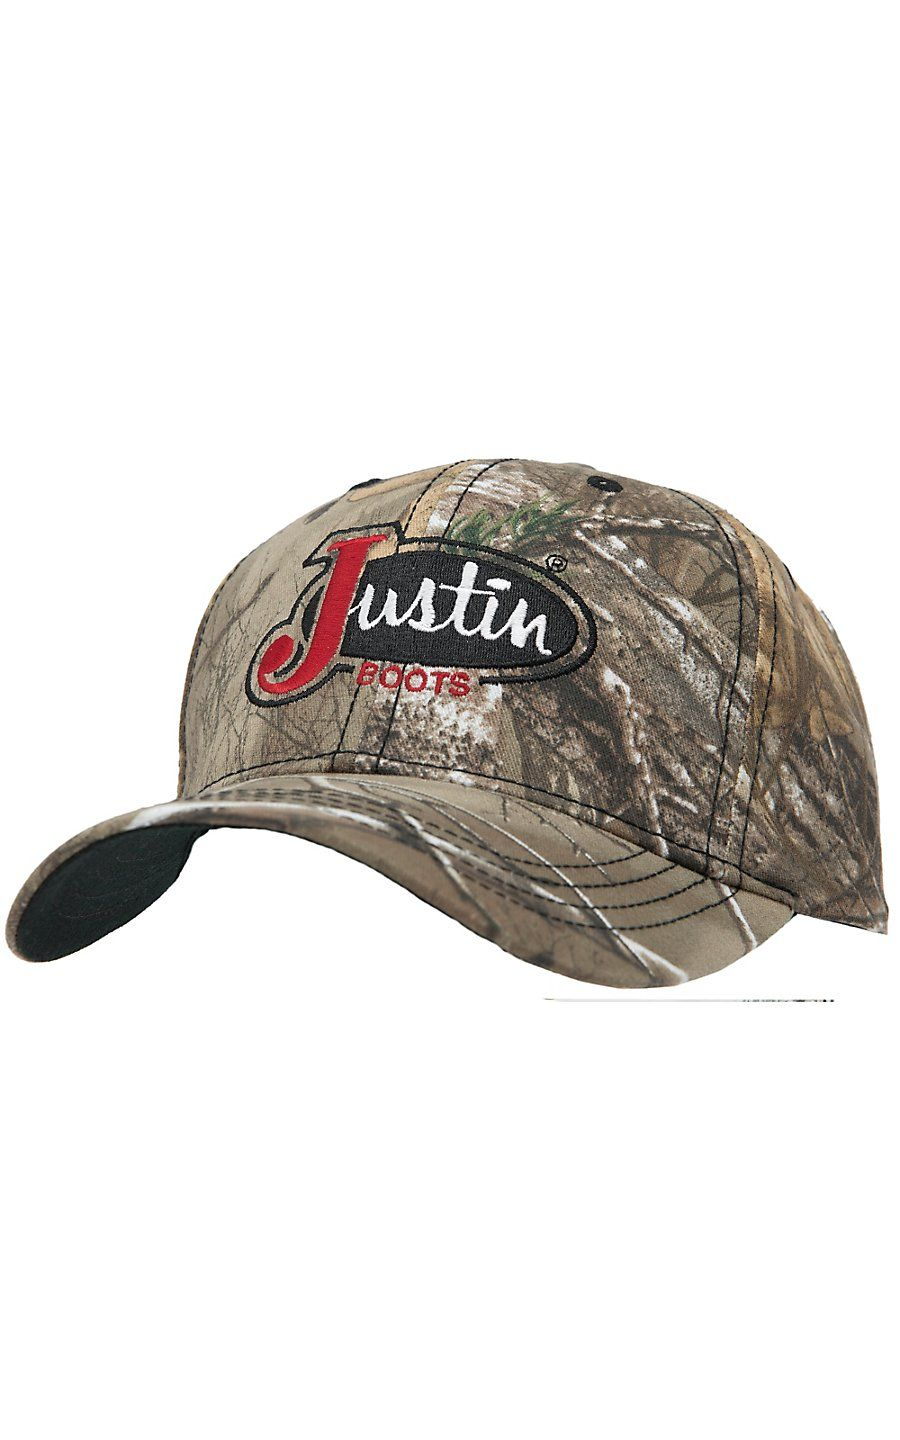 Justin Boots® Realtree Camo with Embroidered Logo Cap 1c544aaf1a55